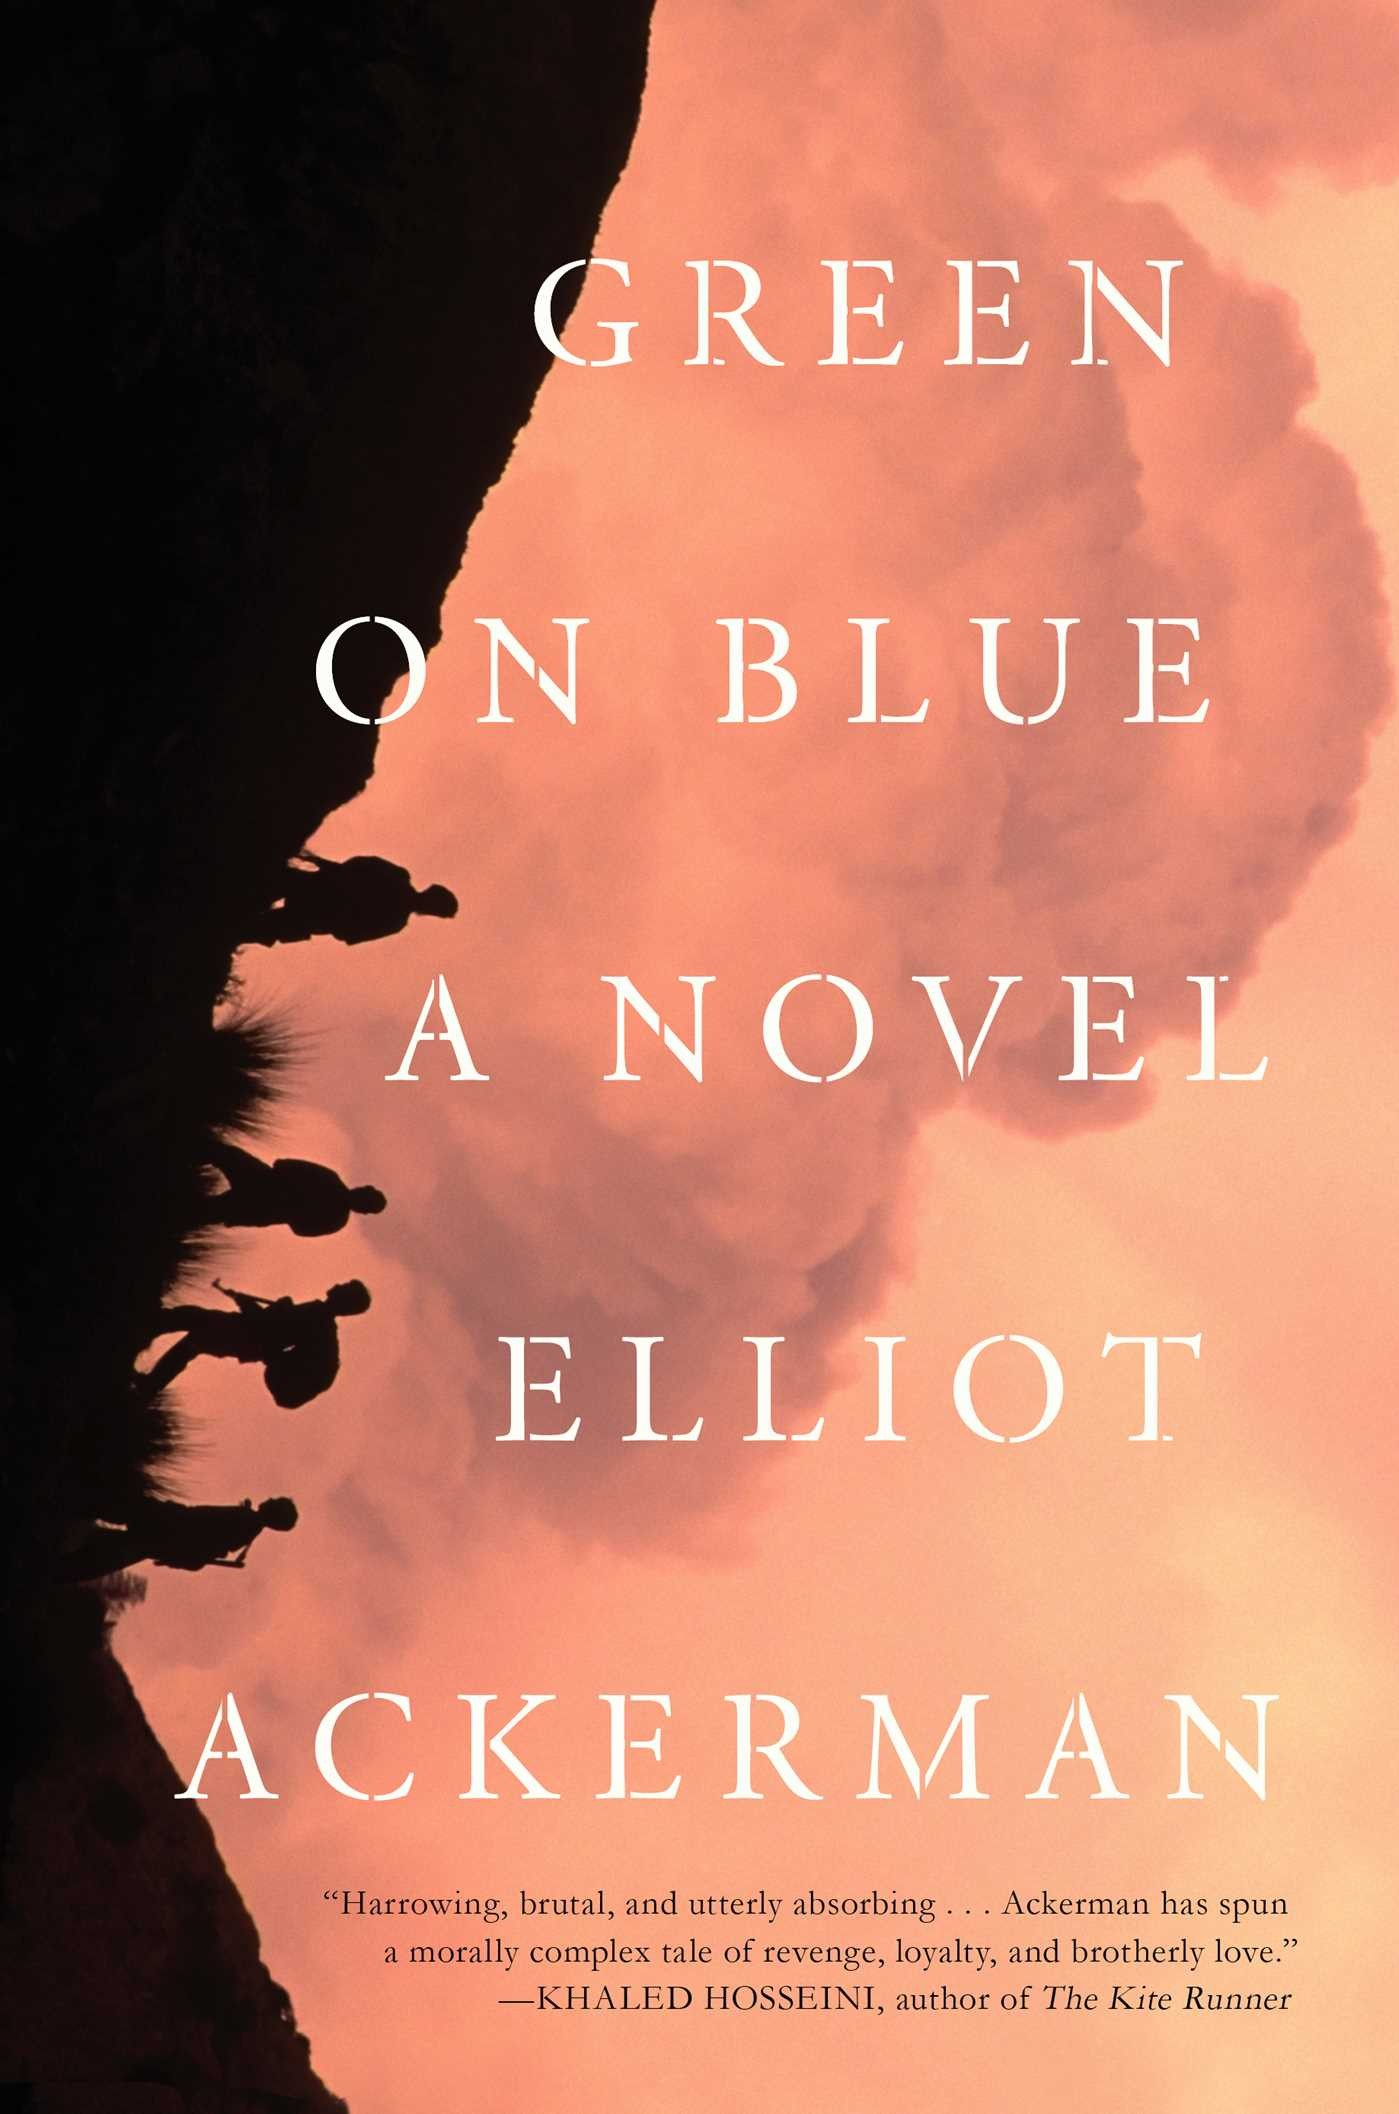 Elliot Ackerman at Powell s Books on Hawthorne in Portland OR on Thu Feb 4 7 30 p m 2016